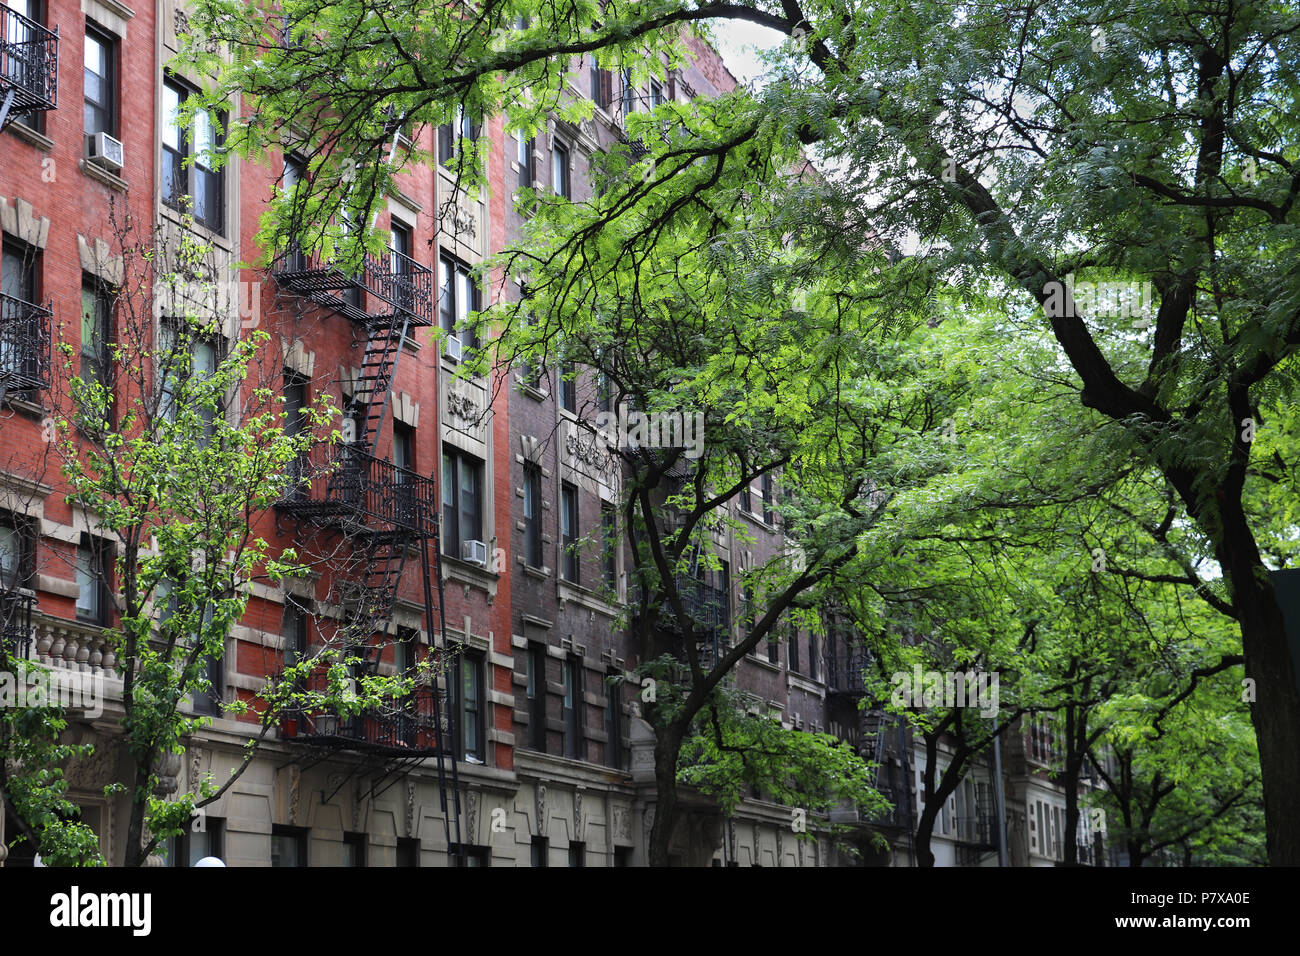 The elegant pre-war red brick apartment buildings on quiet W. 111th Street on the Upper Westside of New York City, near Columbia University. Stock Photo